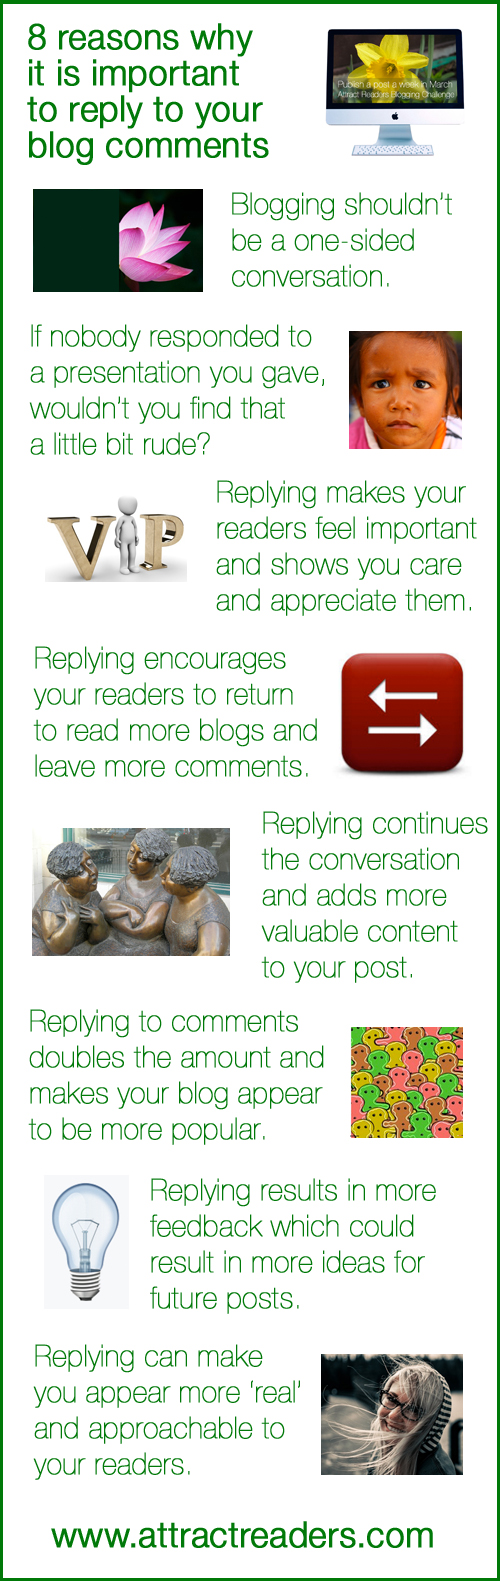 8 reasons why it's important to reply to your blog comments